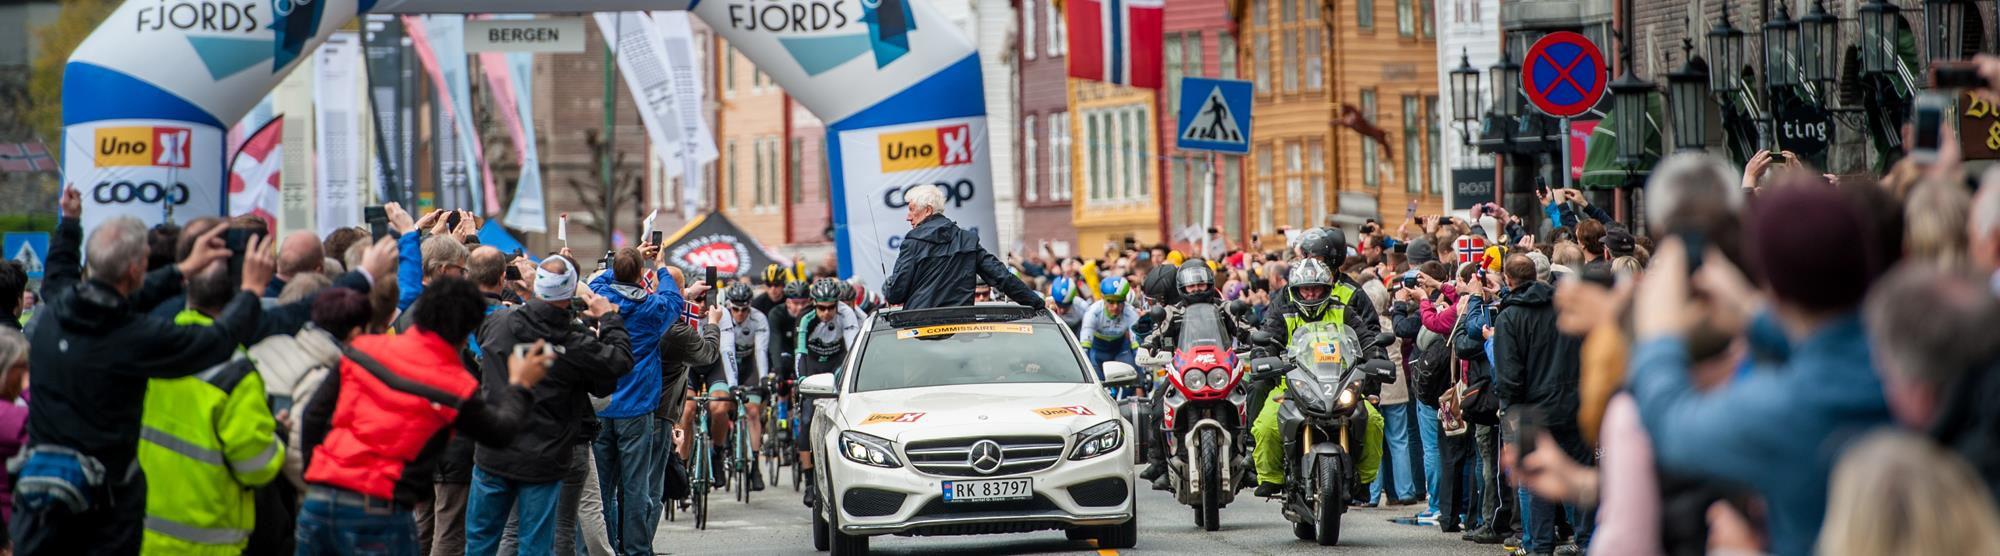 UCI Road World Championships Bergen